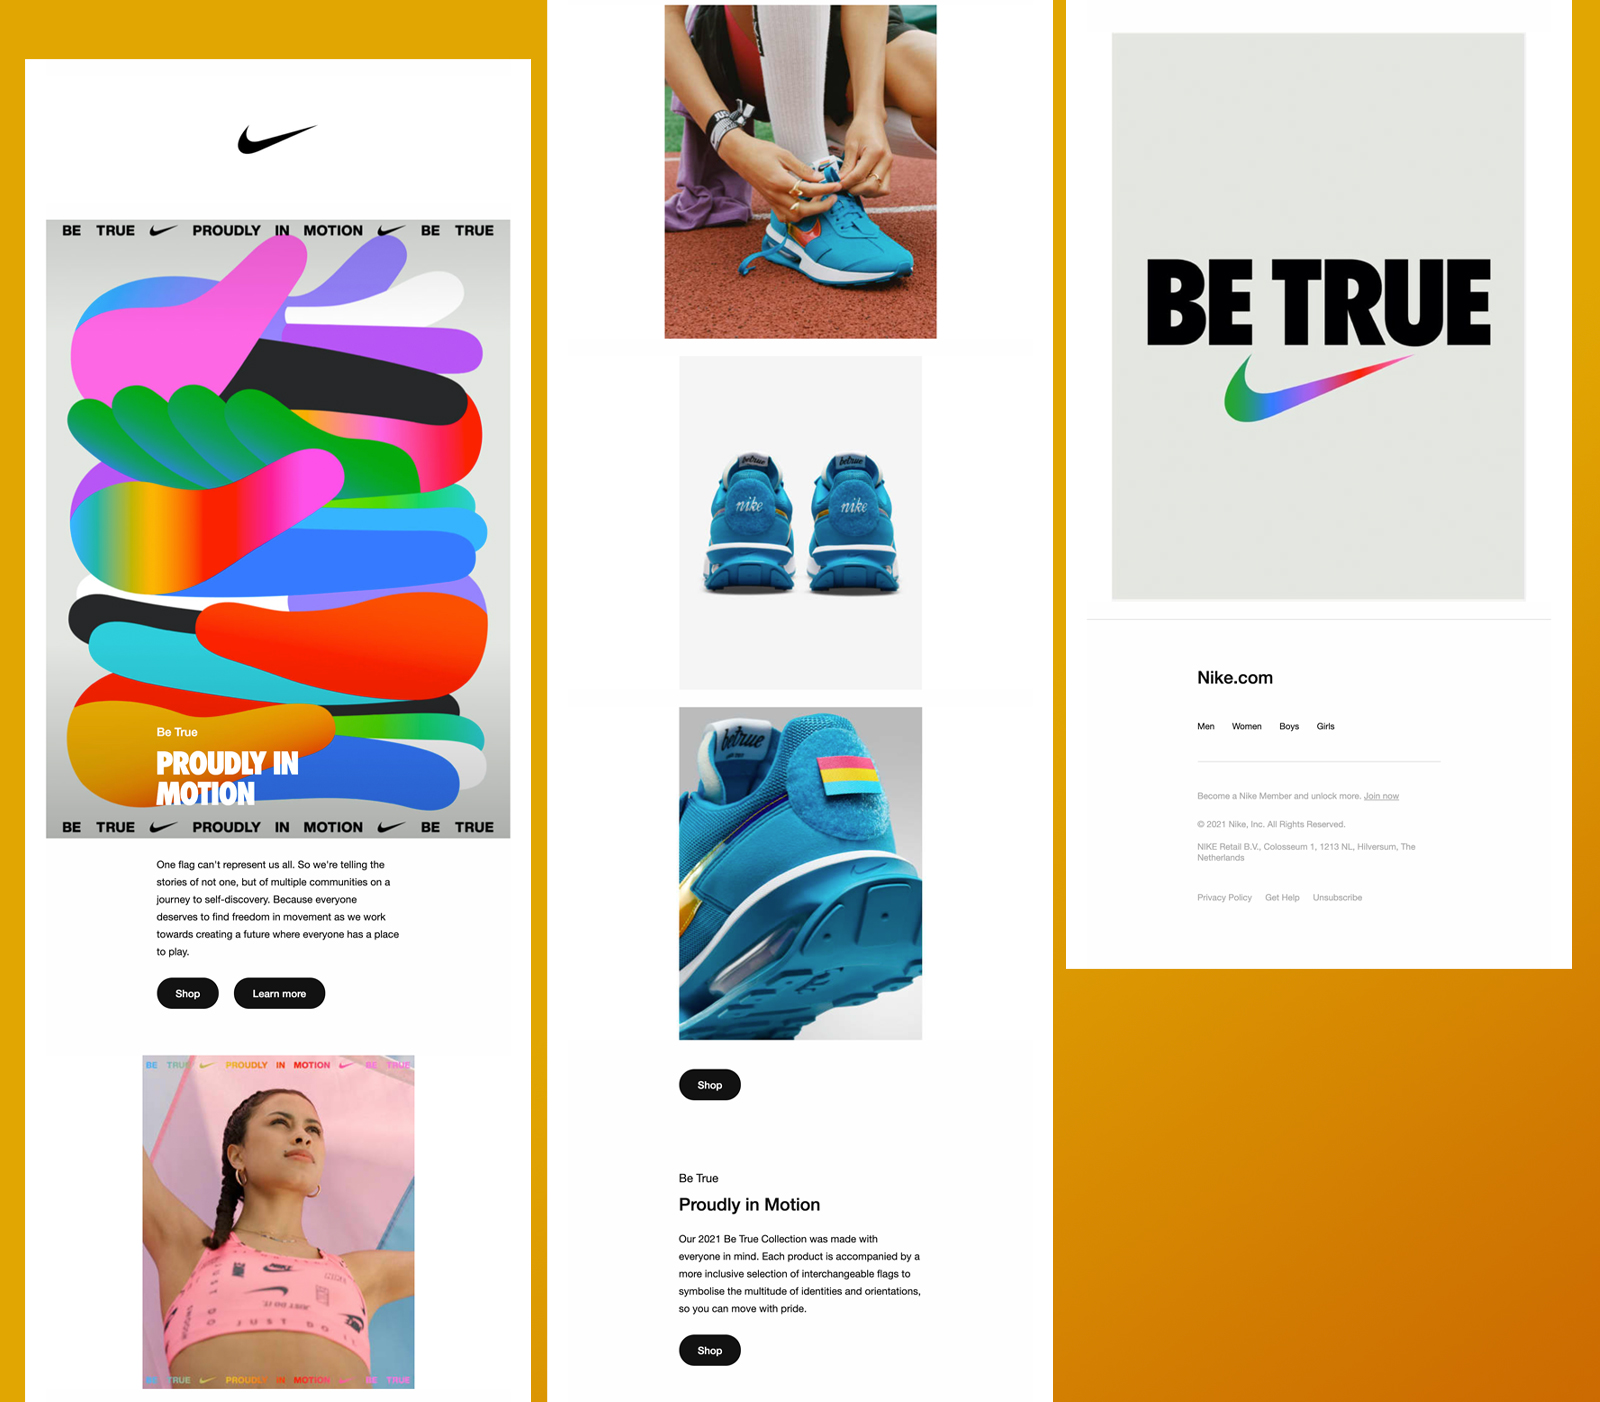 Nike Be True email